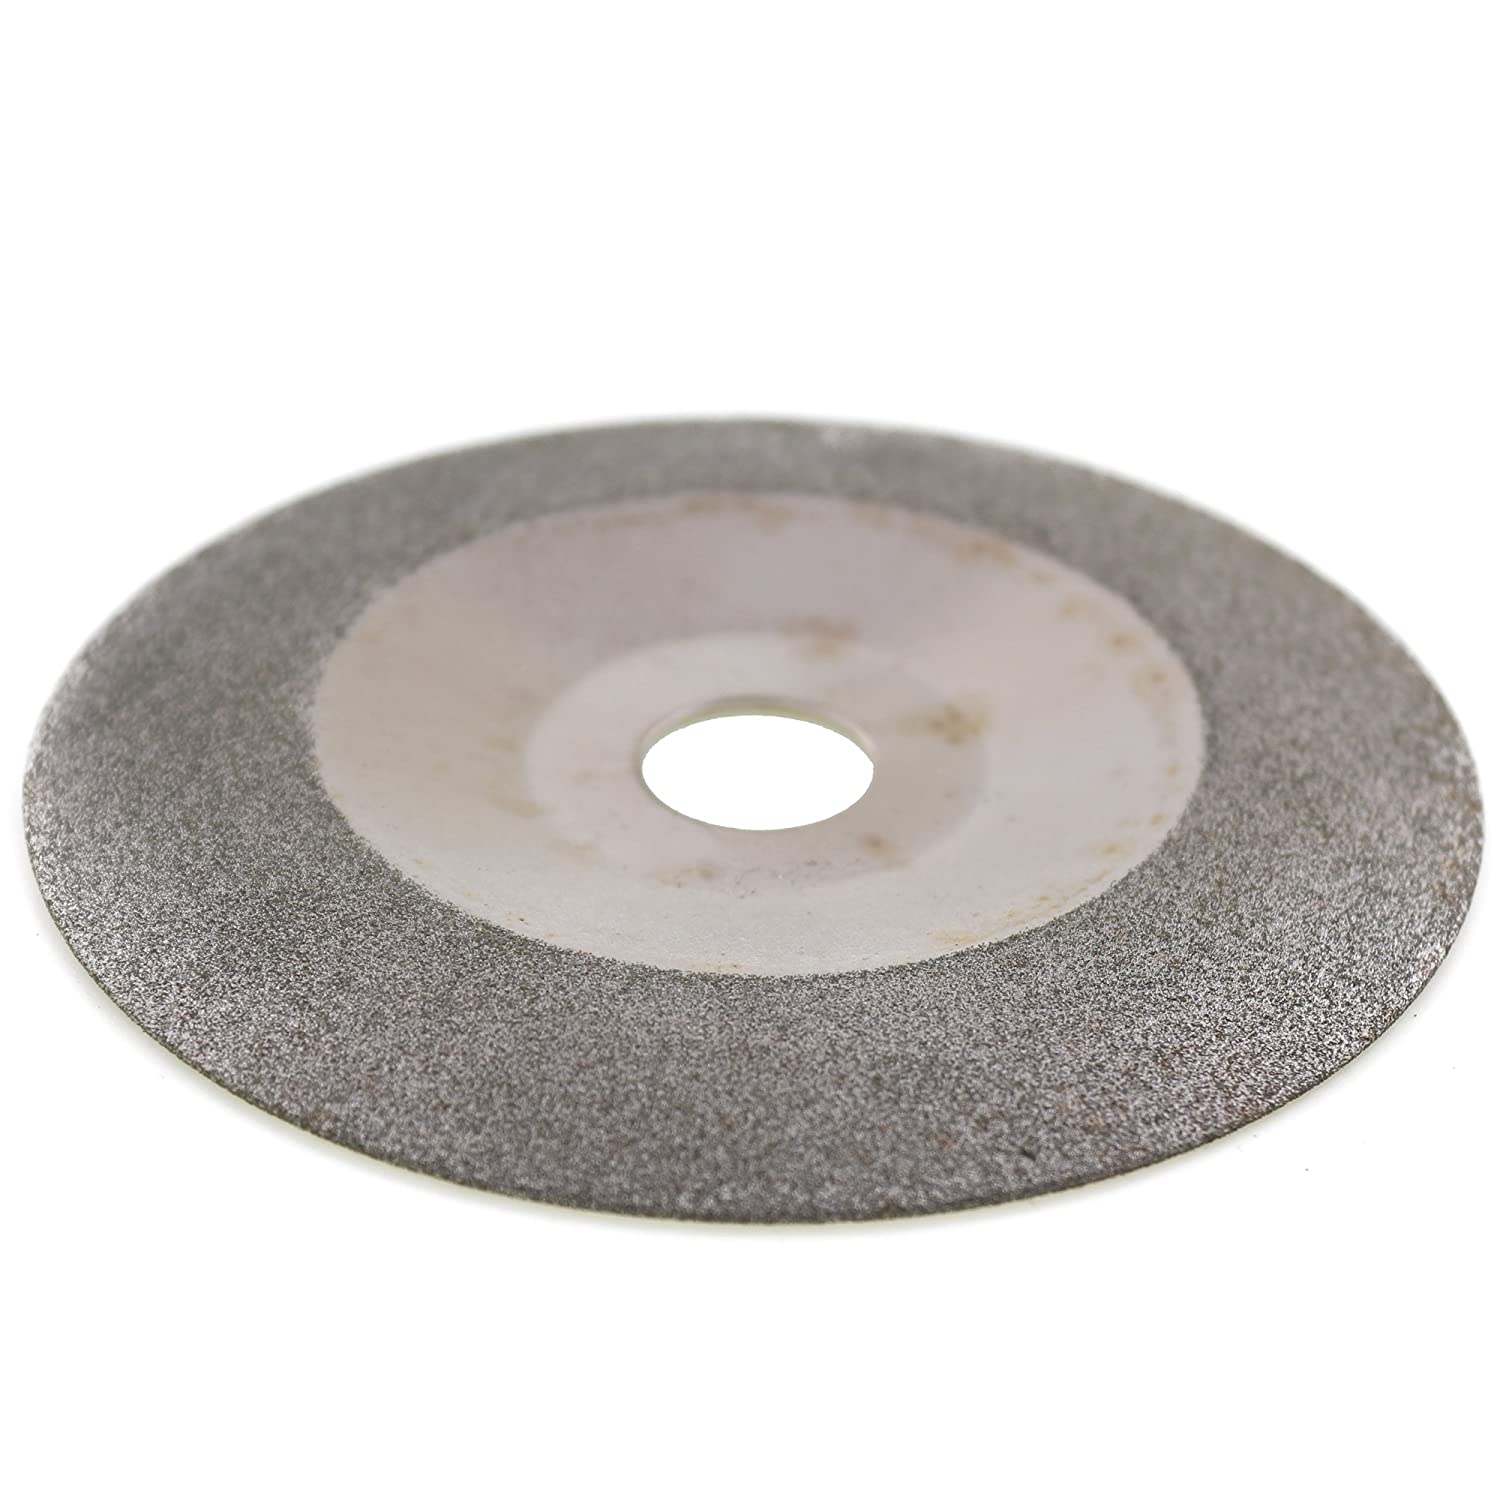 JOINER 100 mm 4 inch Diamond Coated Waveform Convex Grinding Disc Wheel Grit 150 Arbor Hole 16 mm 5//8 for Angle Grinder Glass Stone